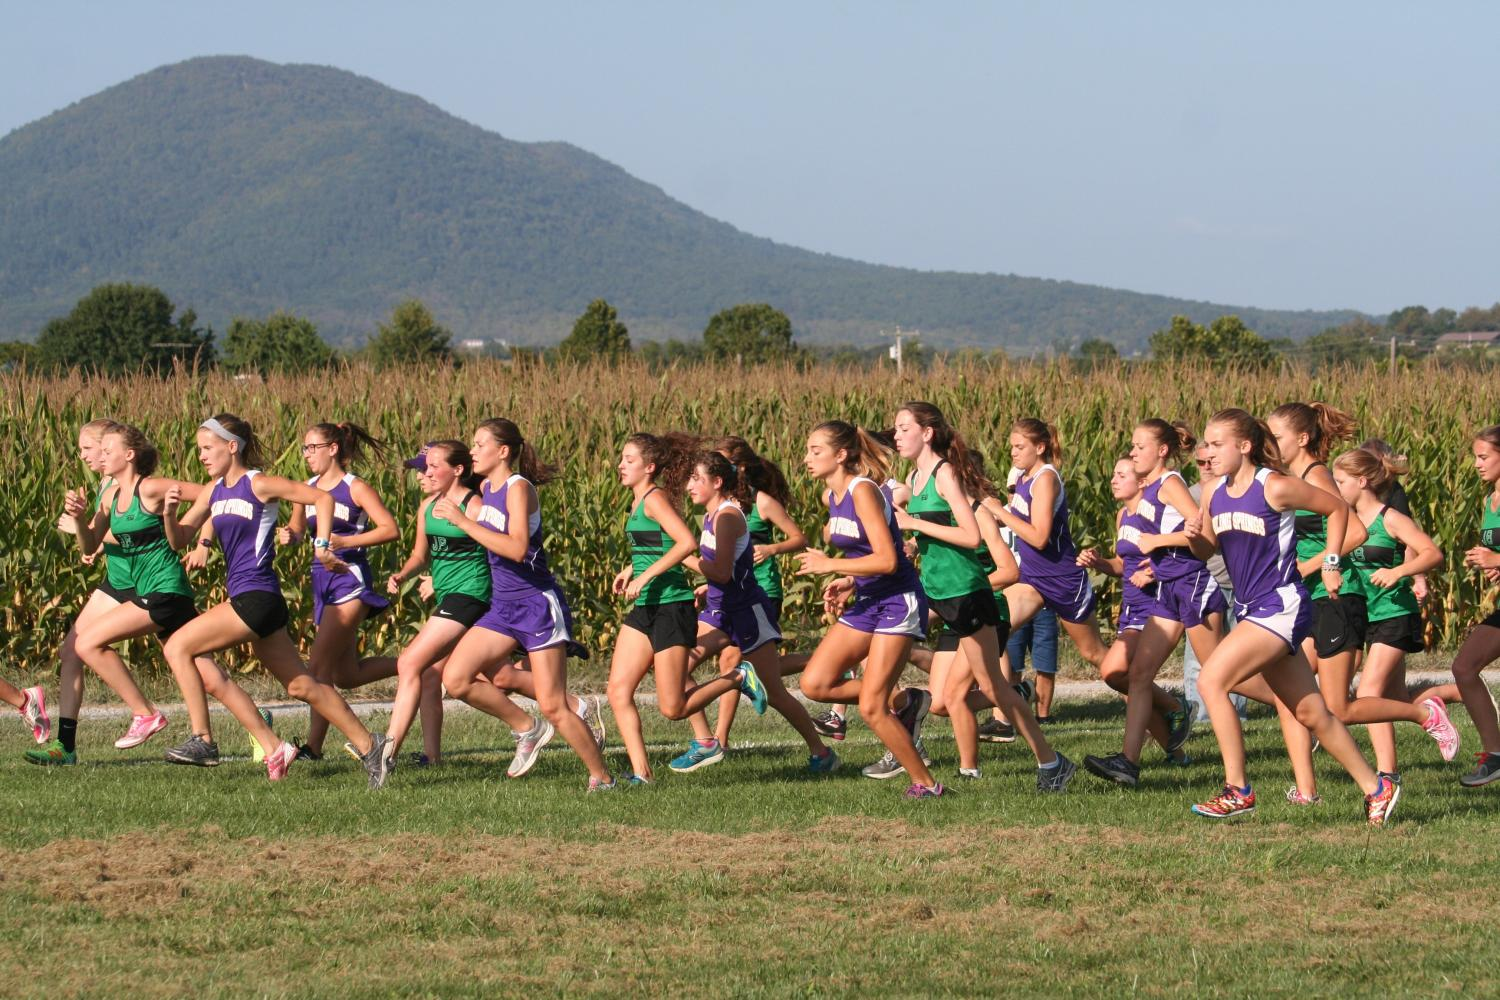 James Buchanan girls start their race against the Boiling Spring bubblers on Tuesday Sept. 19.